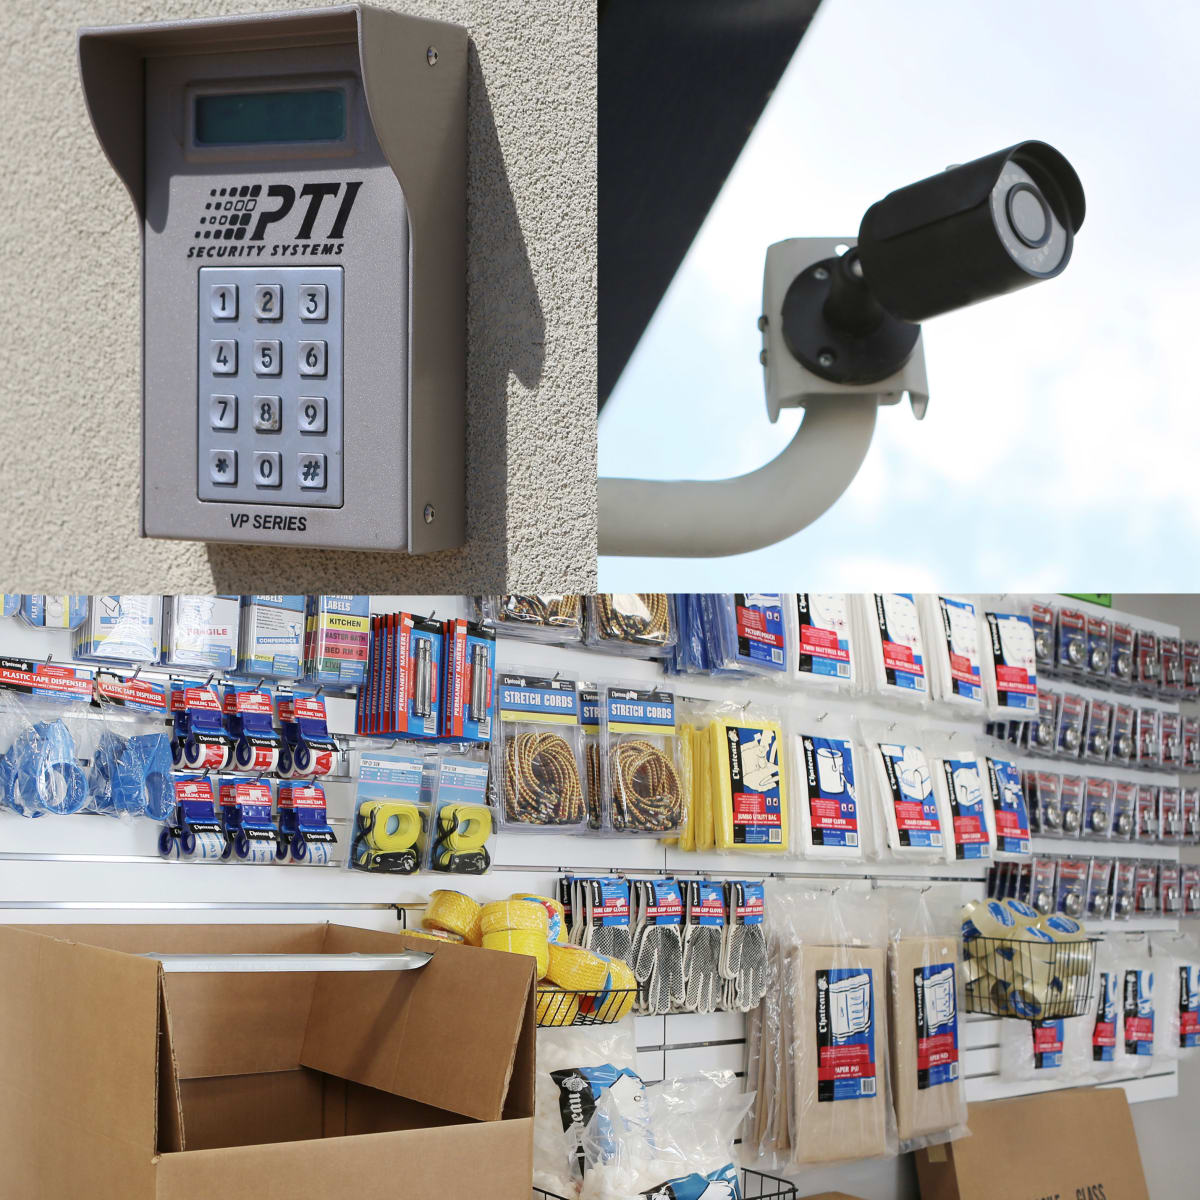 We provide 24 hour security monitoring and sell various moving and packing supplies at Midgard Self Storage in Midland, North Carolina